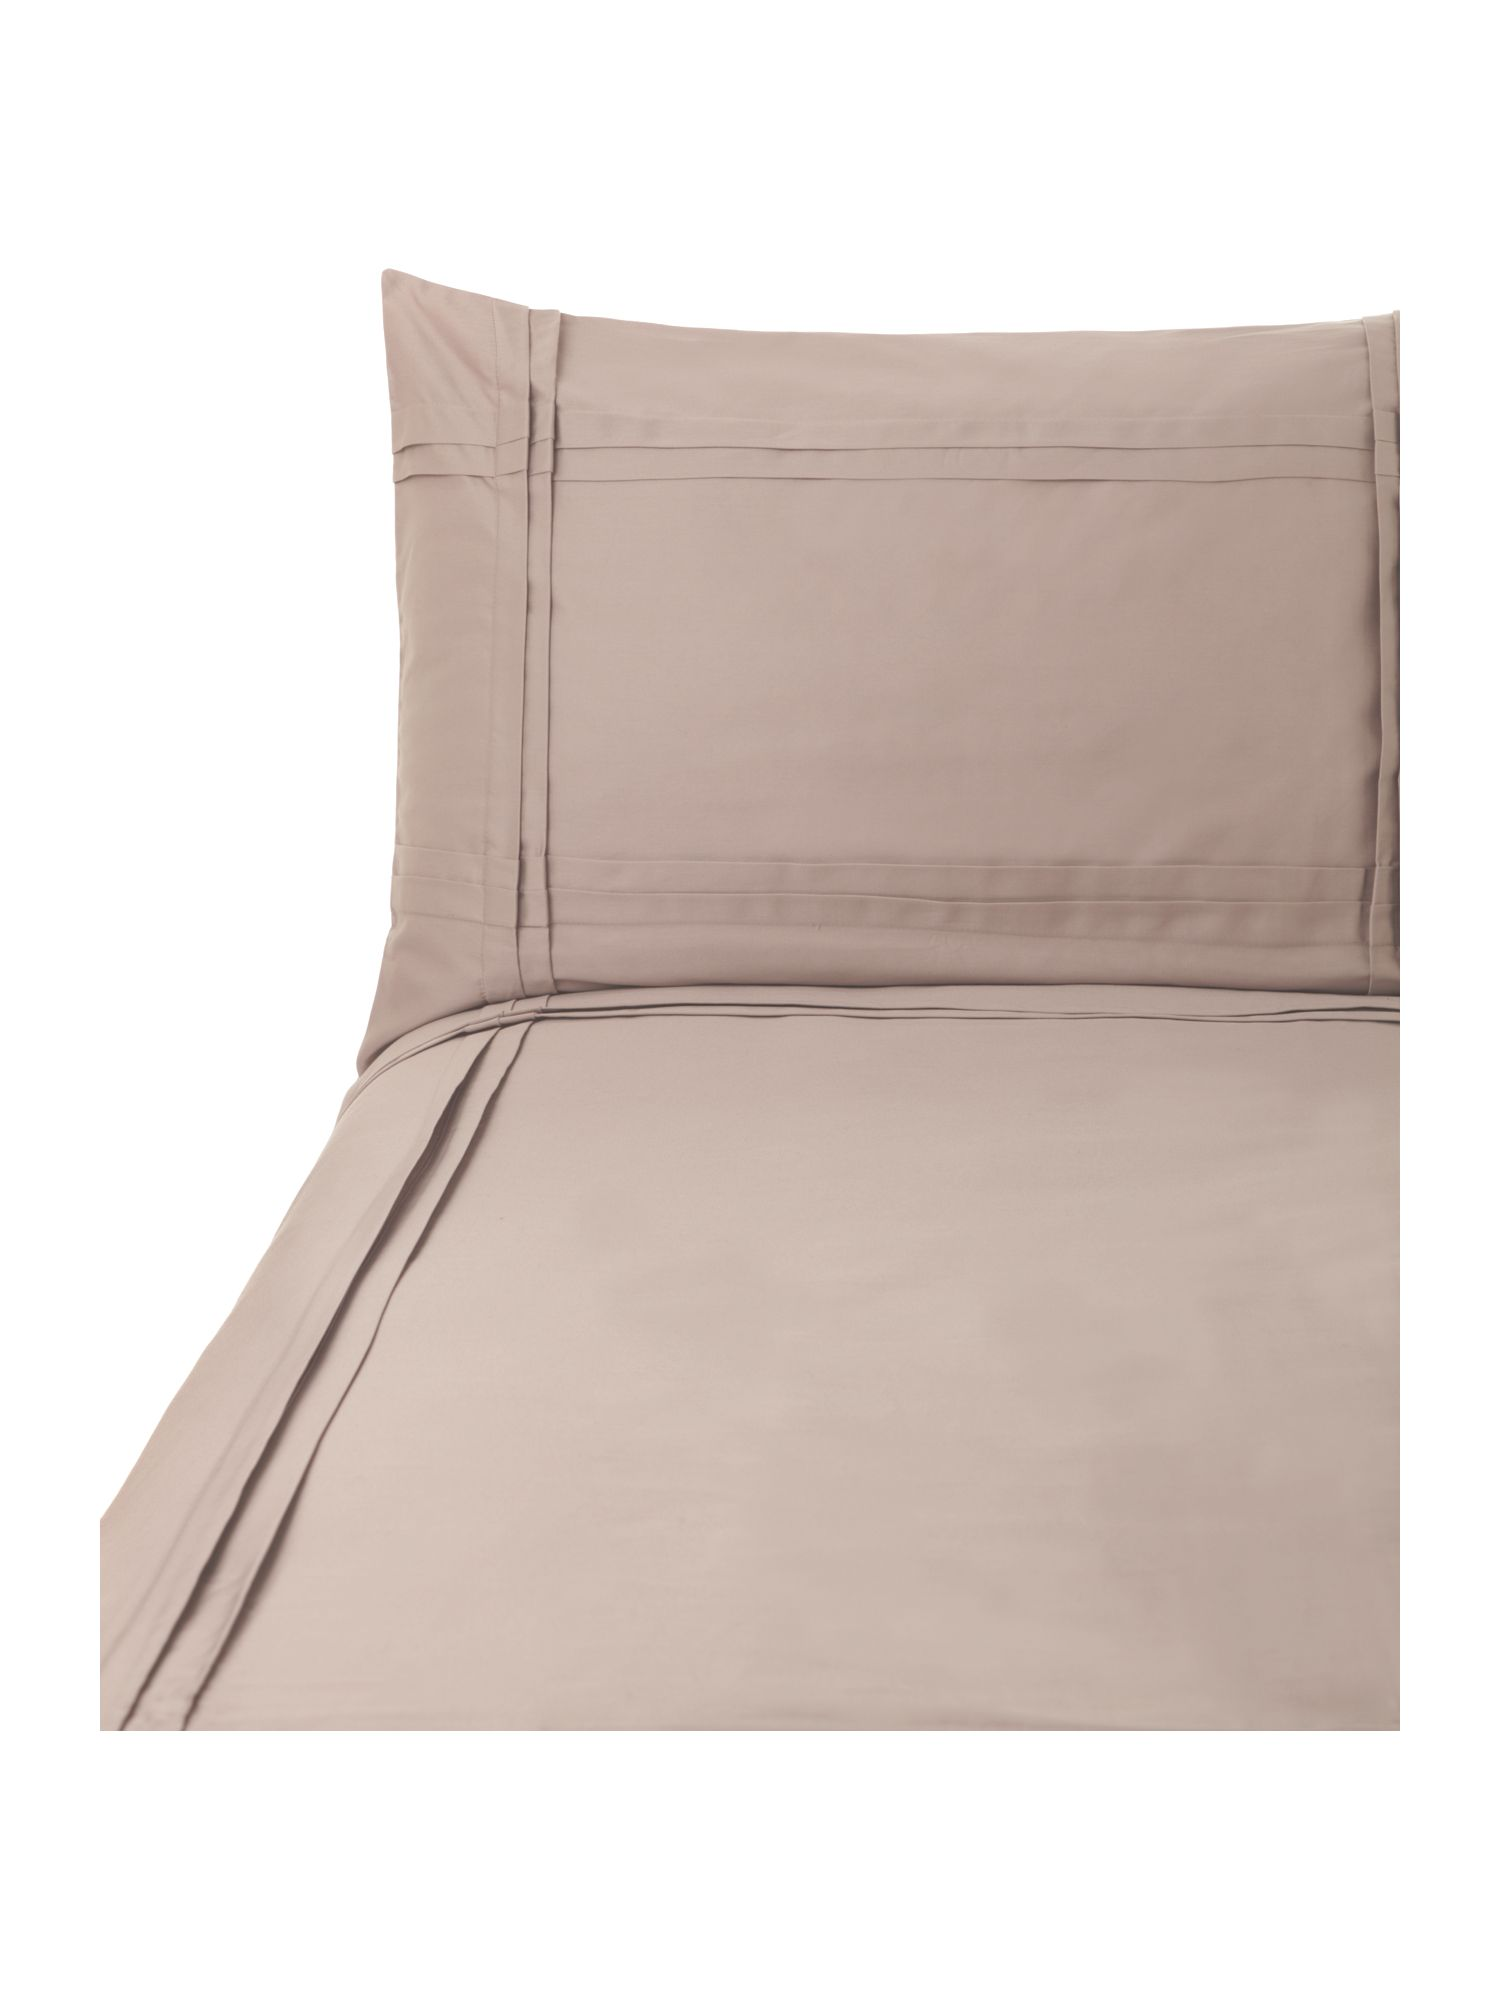 Criss Cross Pleat single duvet cover set taupe